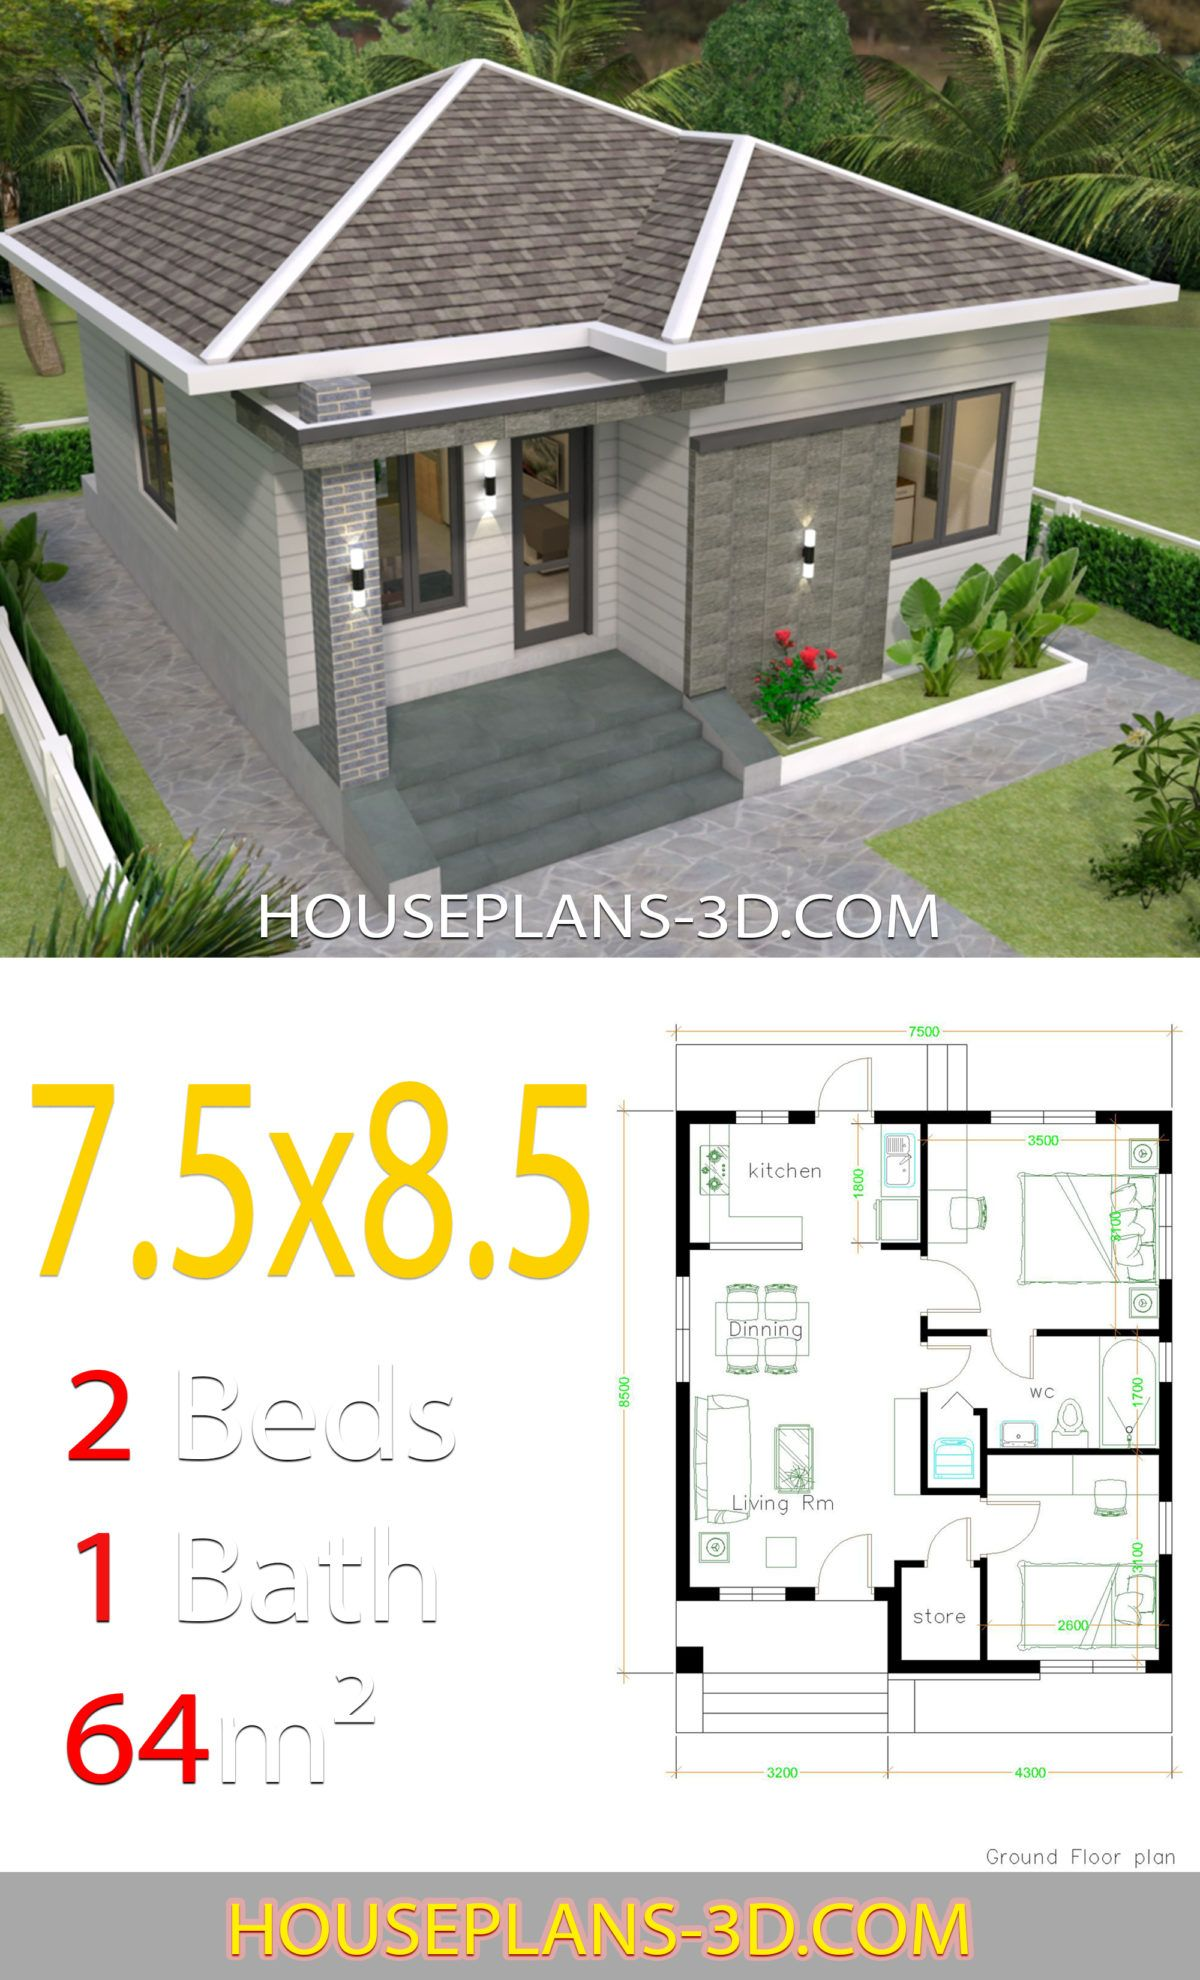 House Design 7 5x8 5 With 2 Bedrooms House Plans 3d In 2020 Bedroom House Plans My House Plans House Plans